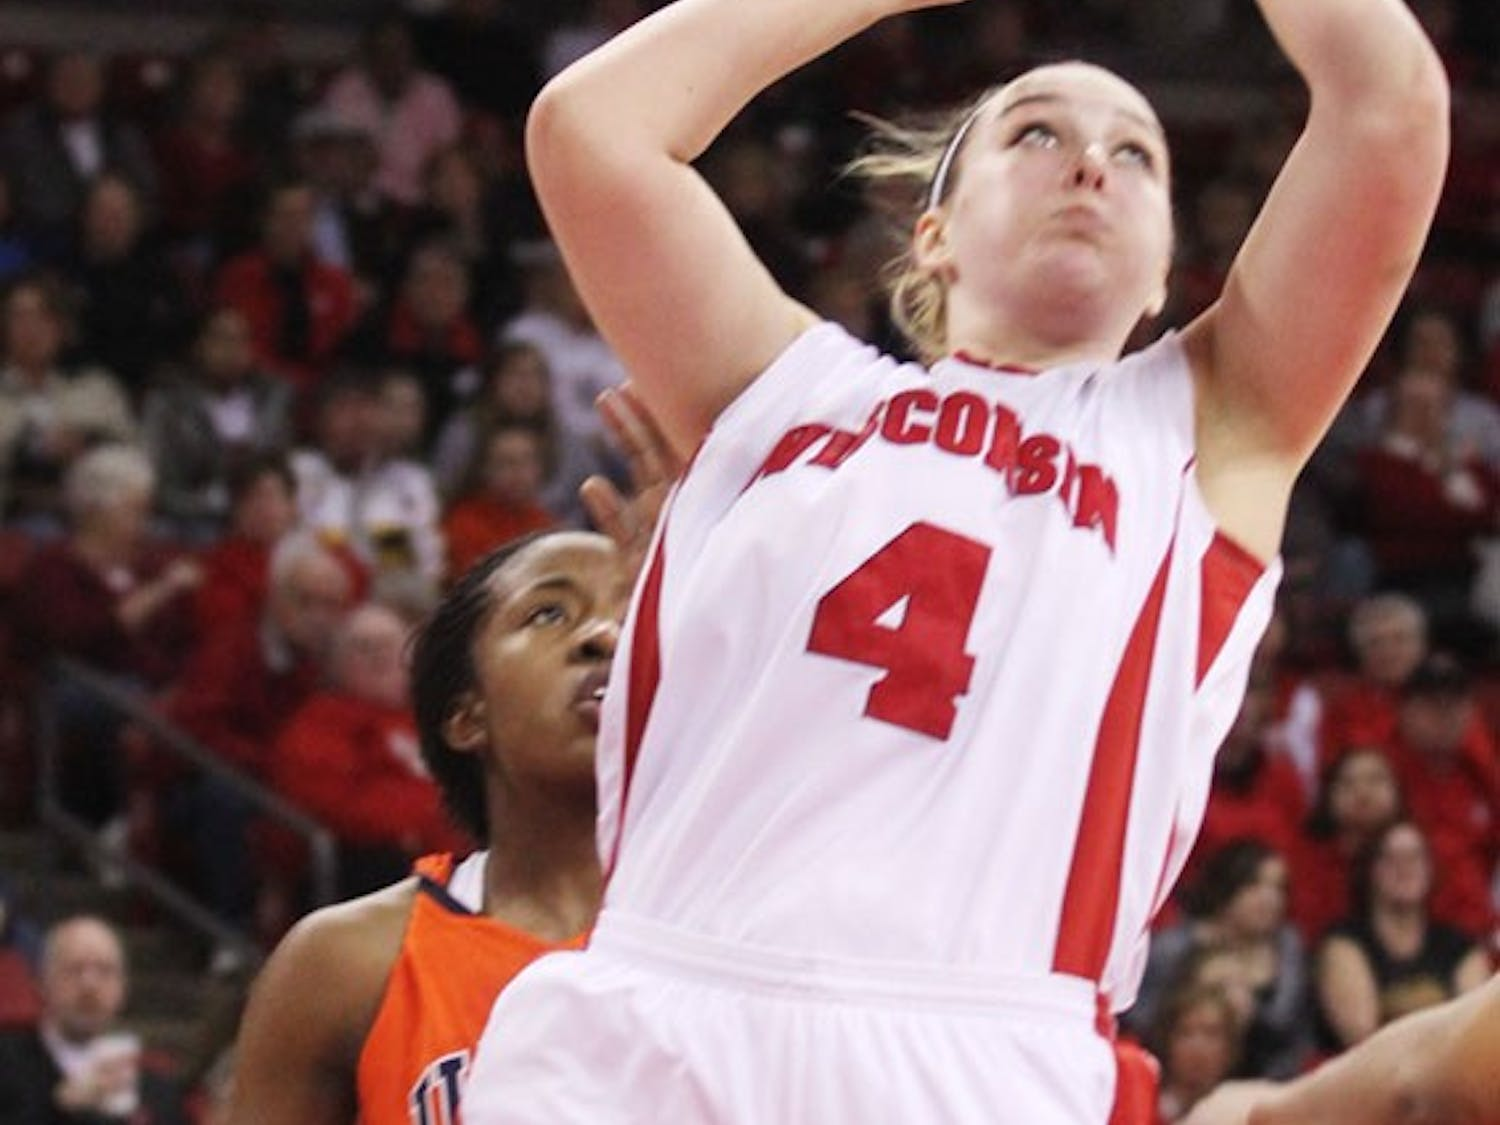 Steinbauer shines as Badgers keep improving in win over Ilini